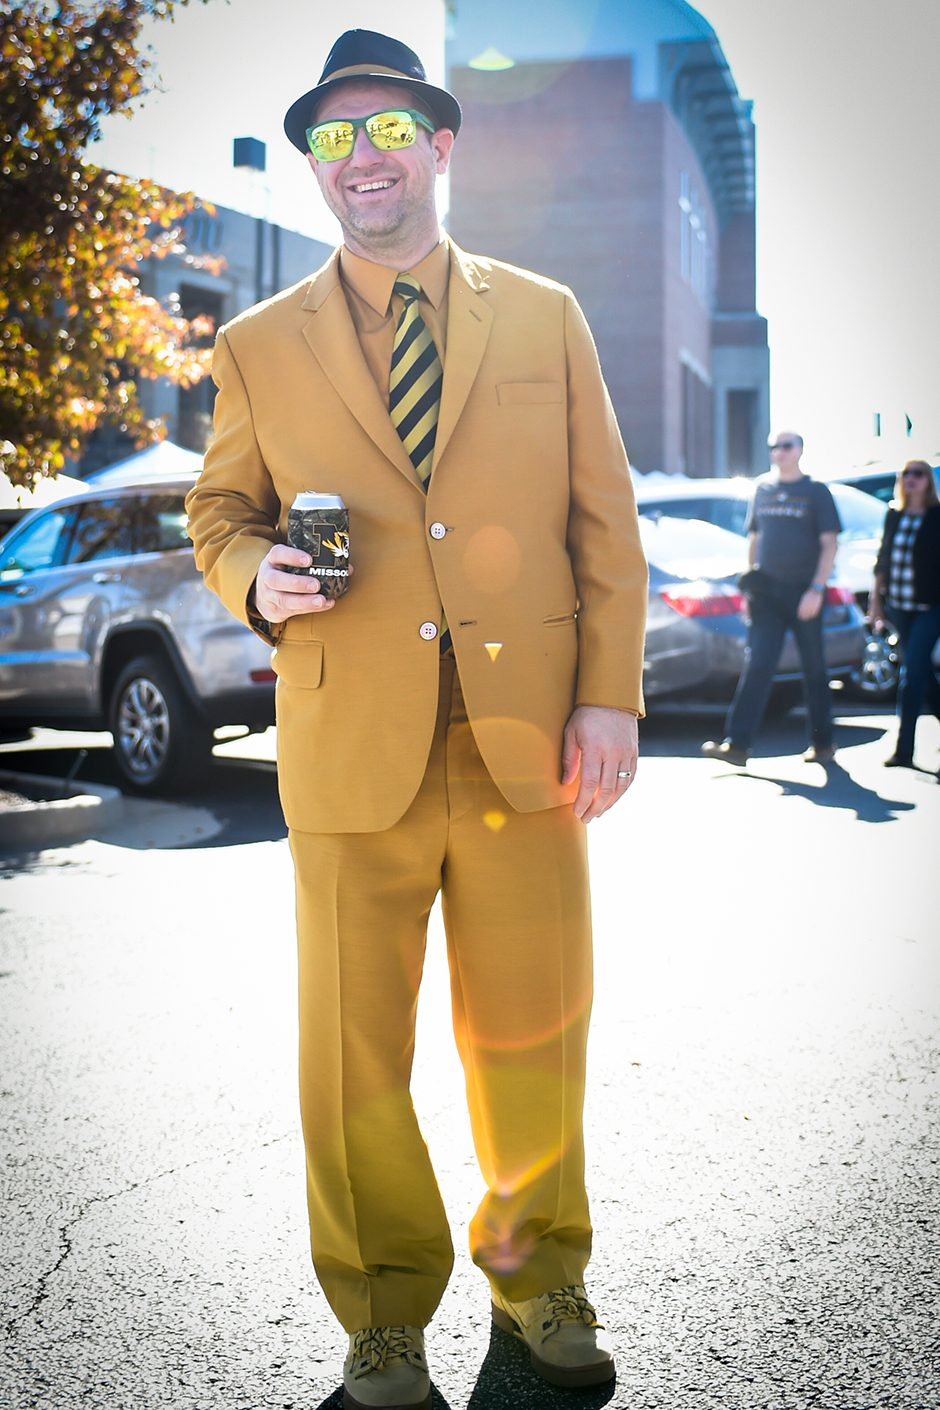 Art Hochthurn, a Mizzou fan from New Hampshire, suits up for the game. Photo by Shane Epping